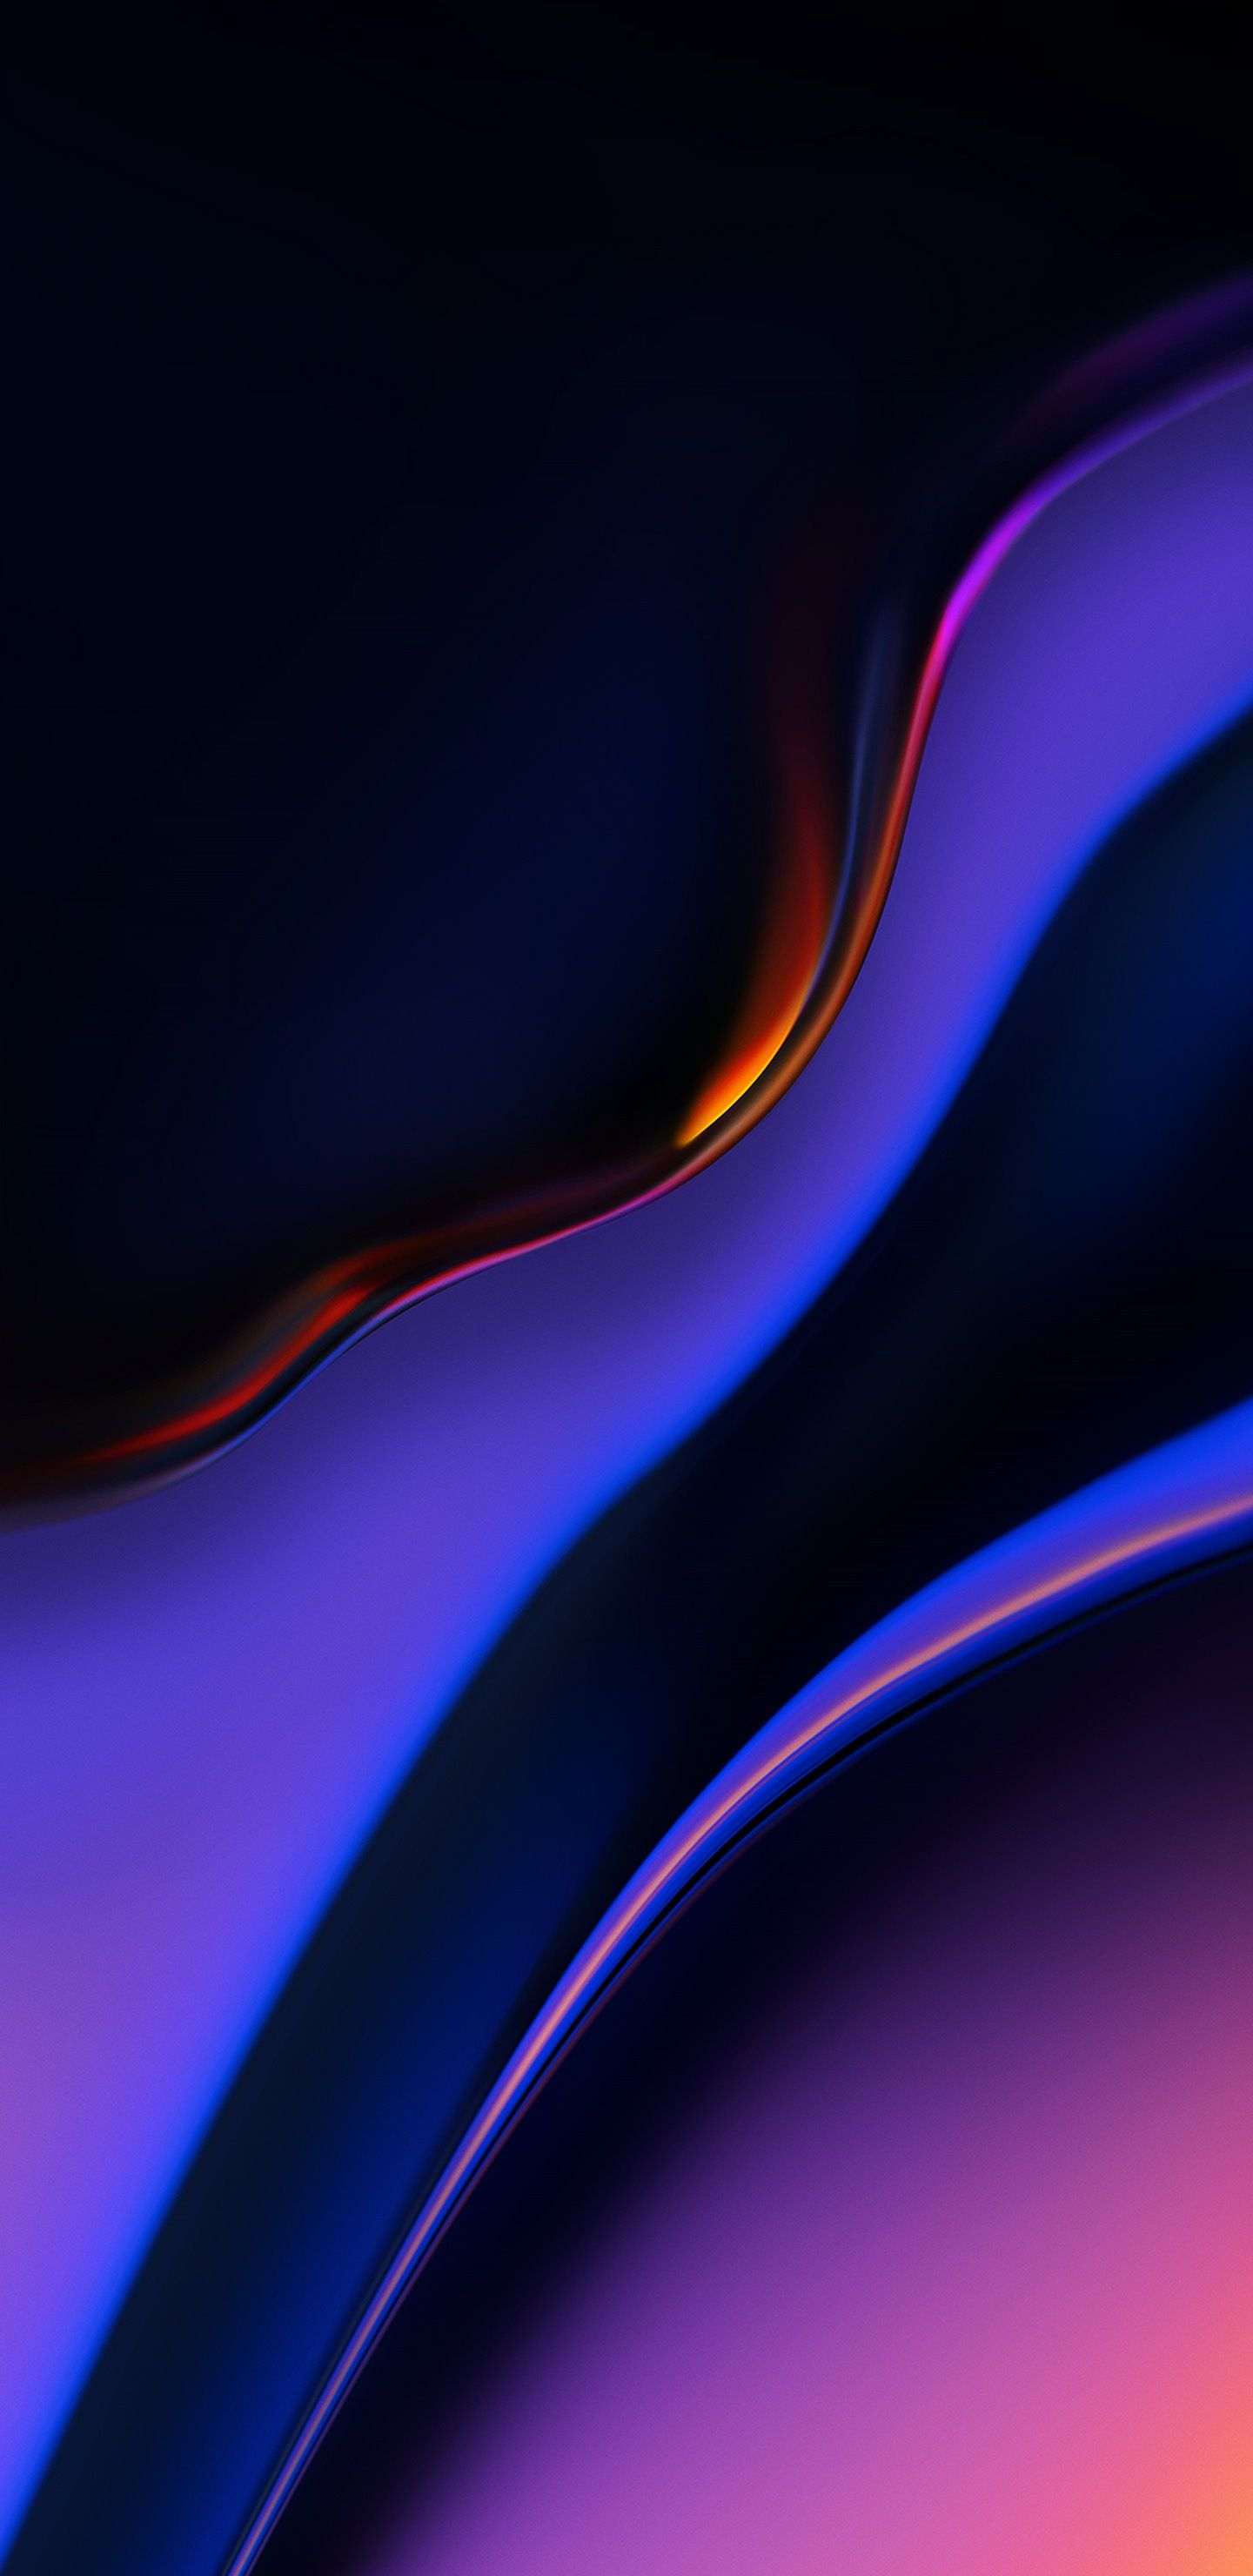 List of Latest Galaxy Phone Wallpaper HD 2020 by wallsphone.fr